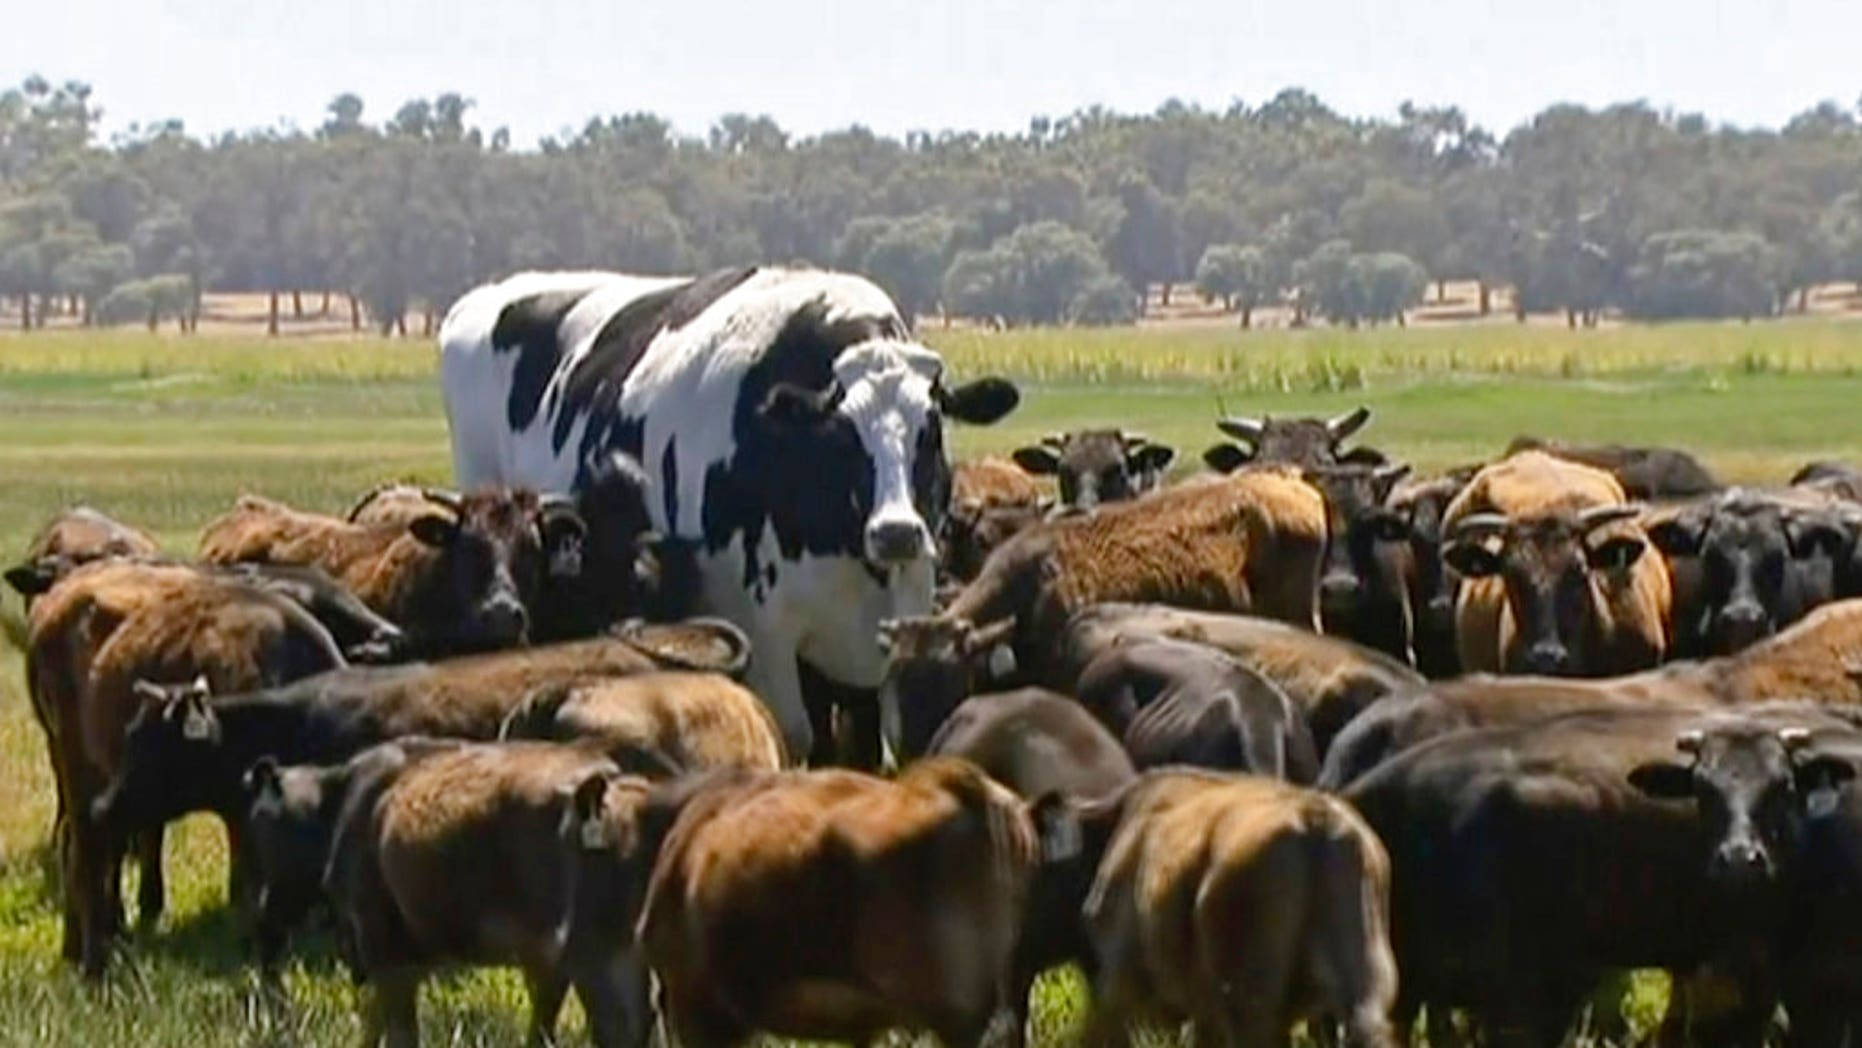 Australia's largest steer lives in the South West